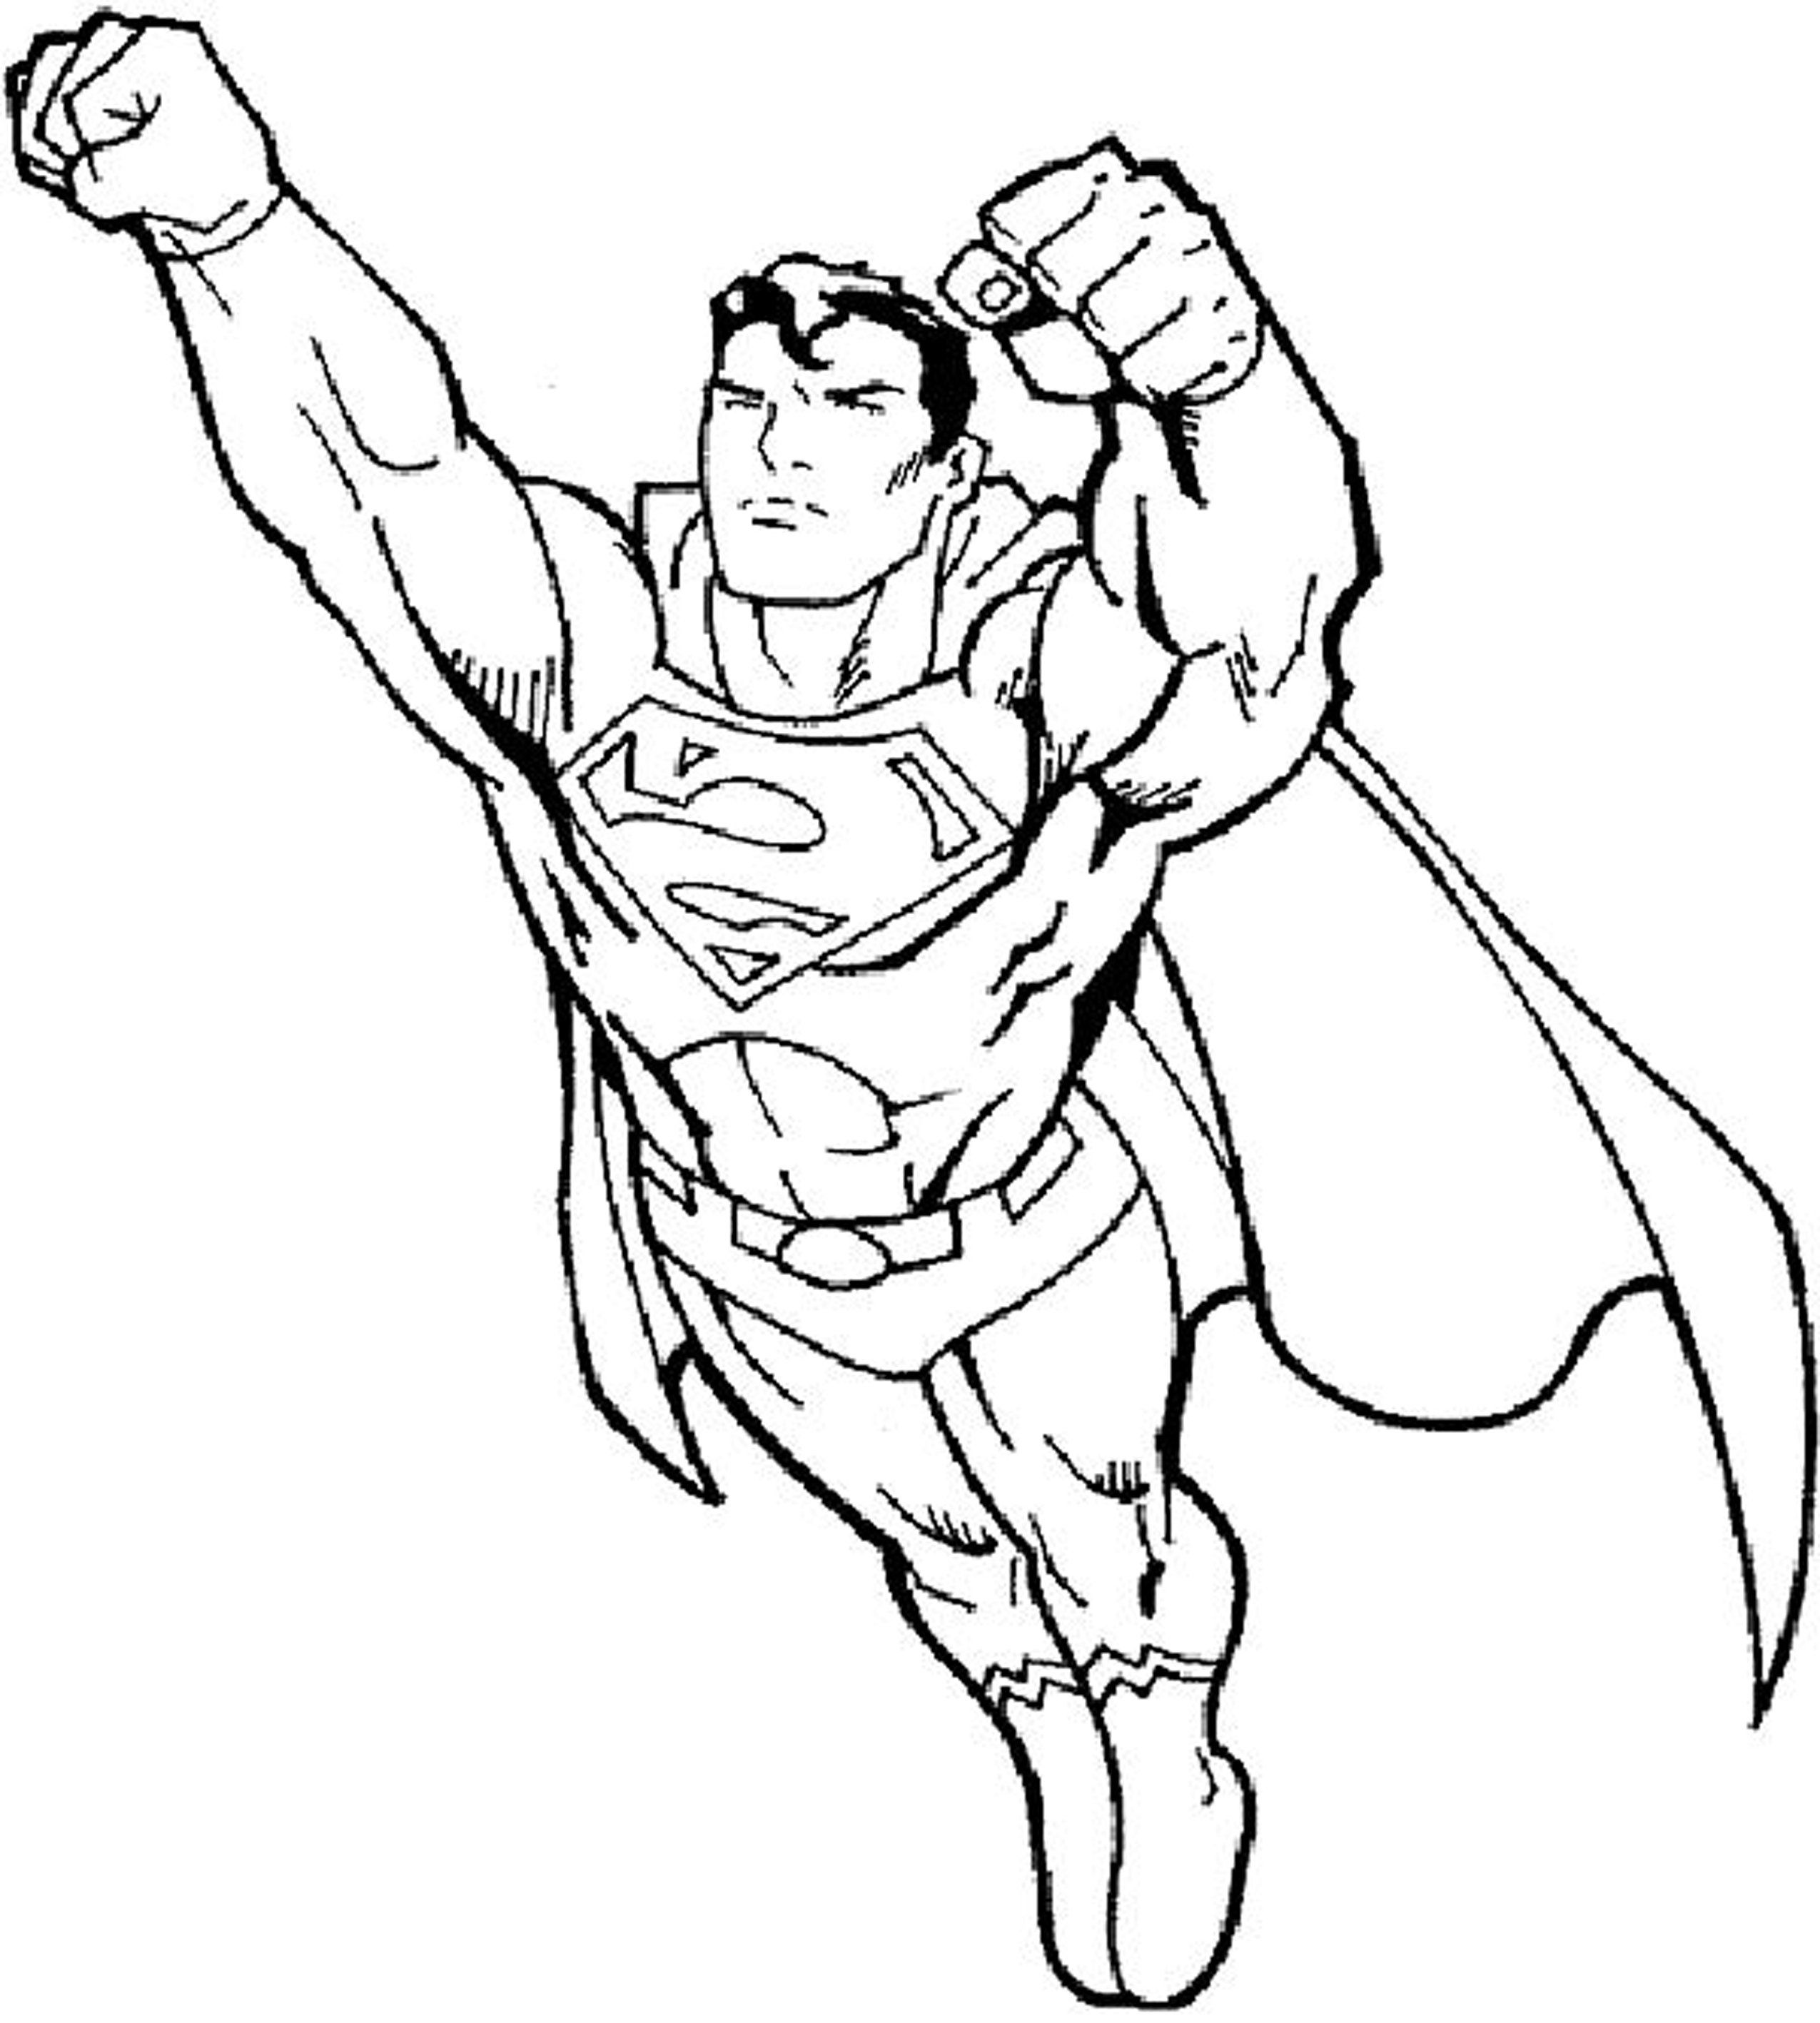 Coloring Pages For Boys : Free coloring pages for boys superman clips pinterest